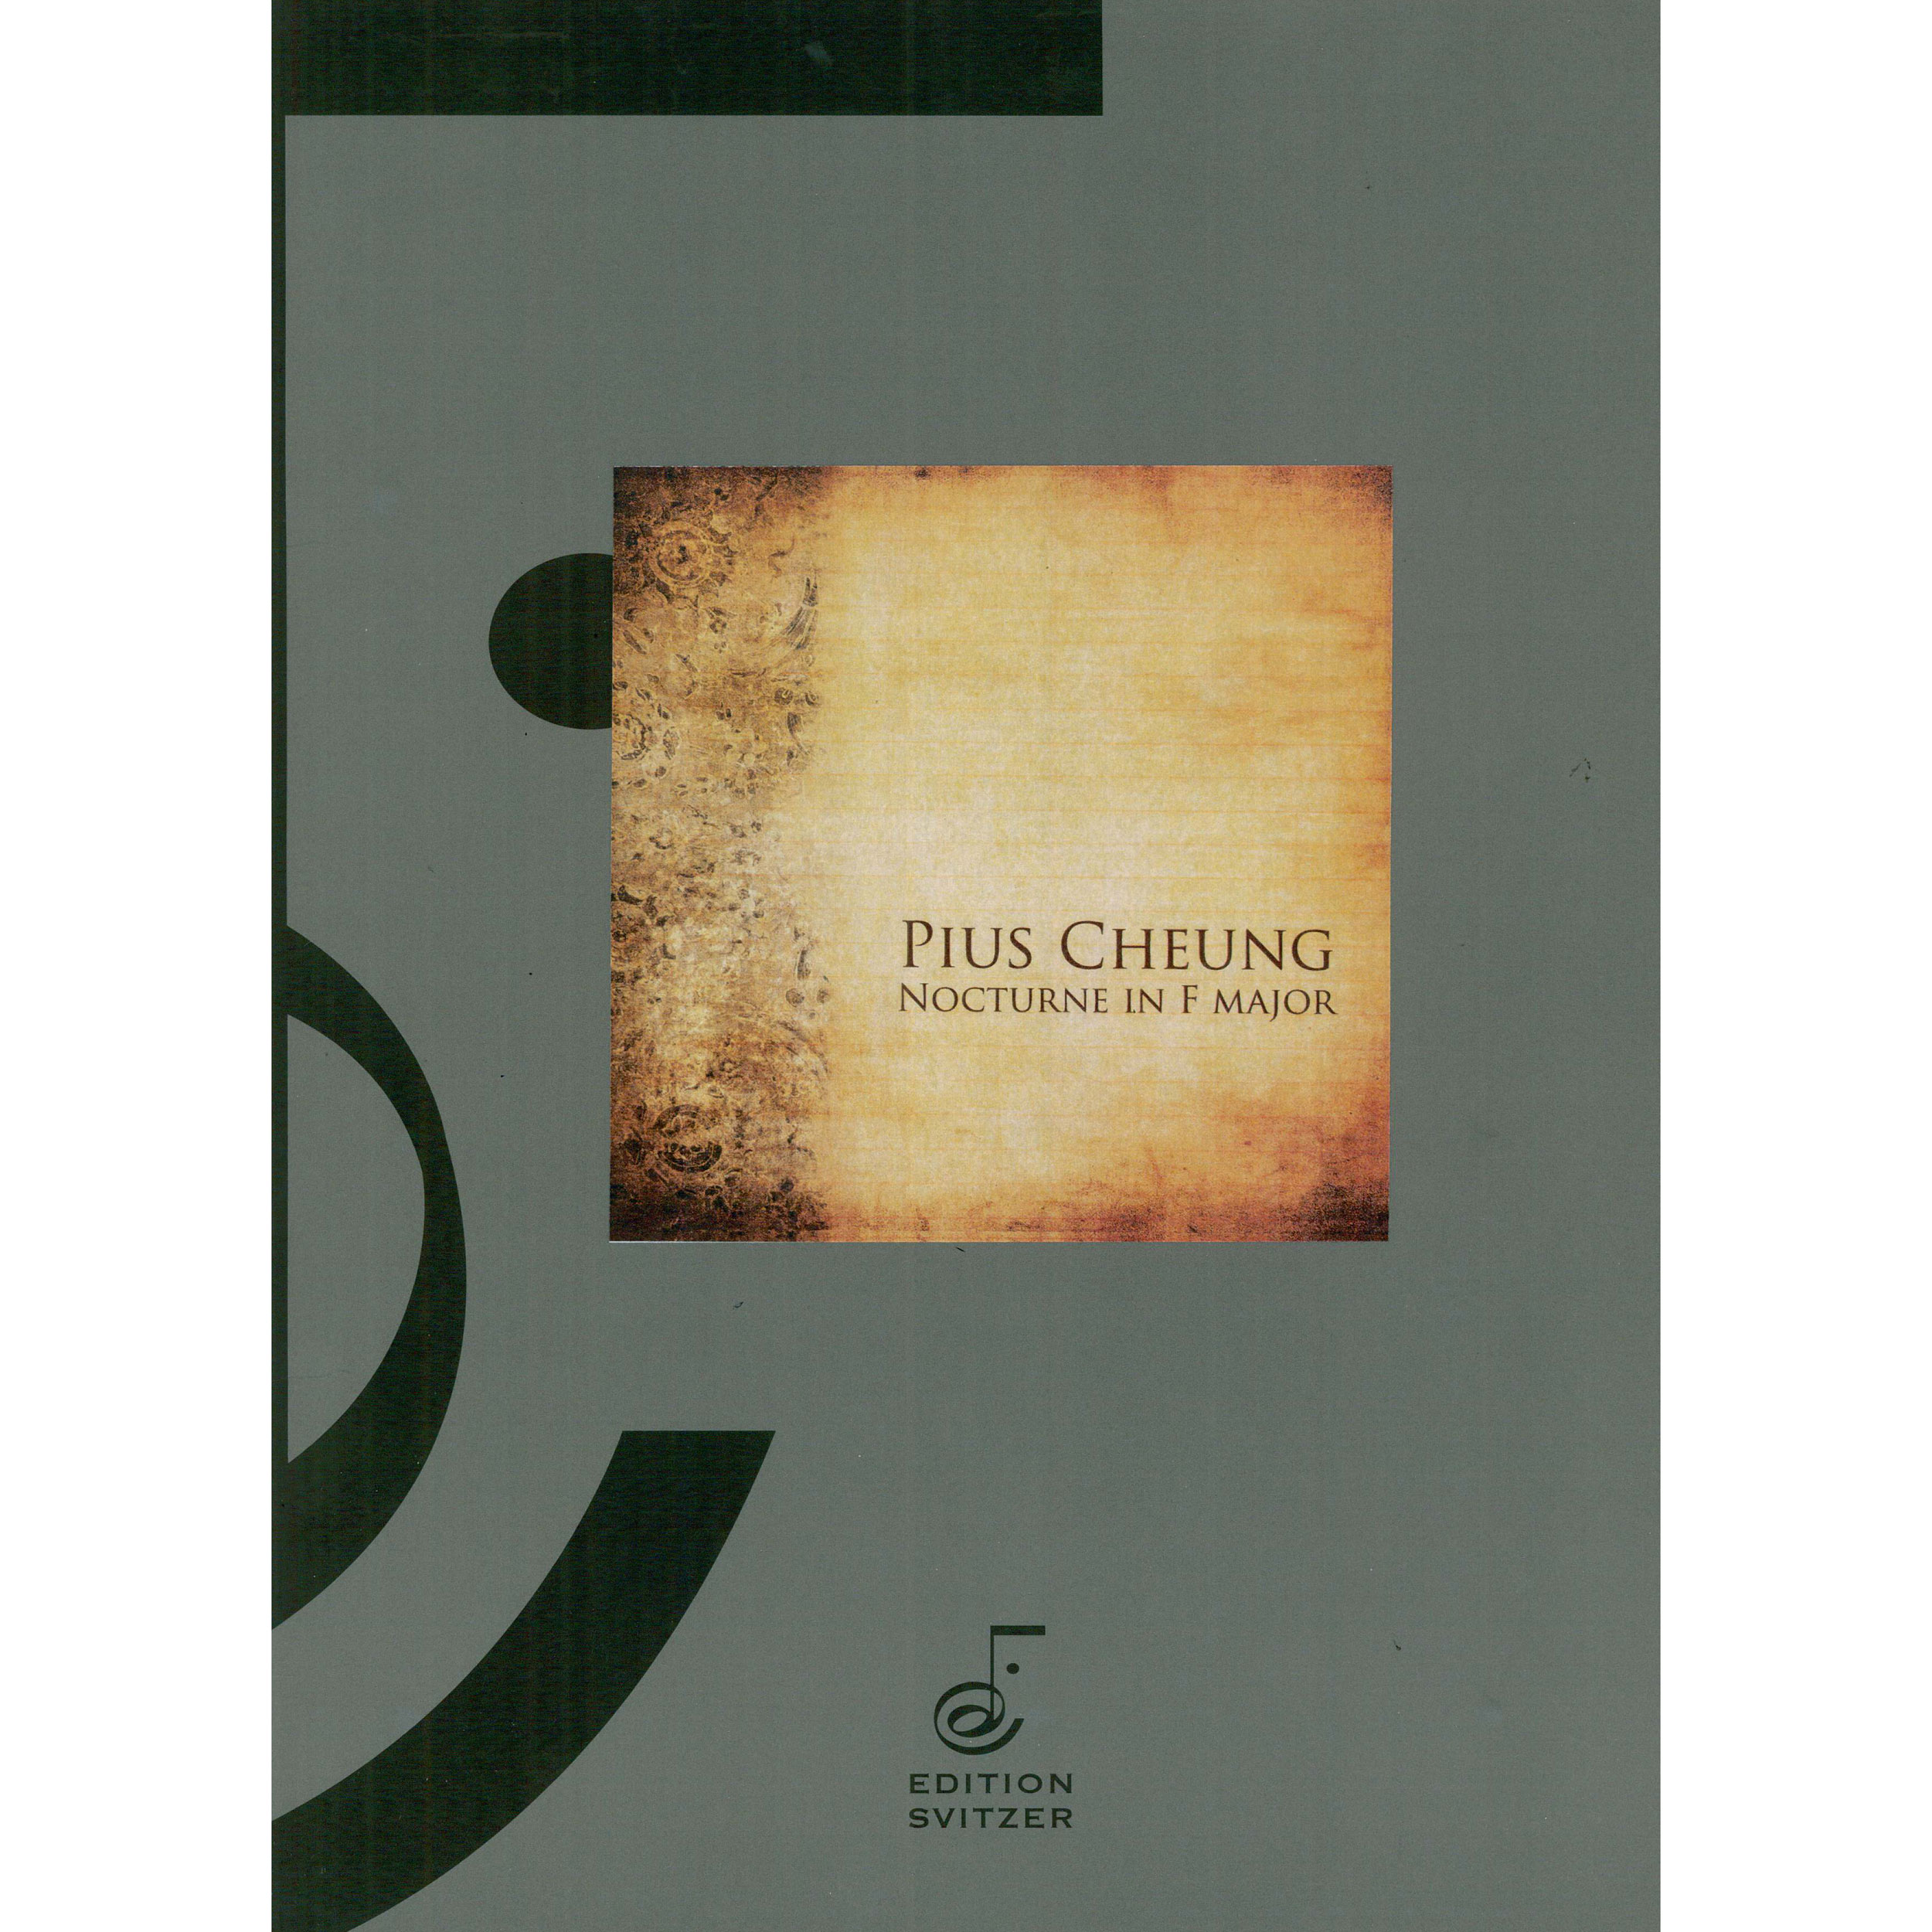 Nocturne in F Major by Pius Cheung